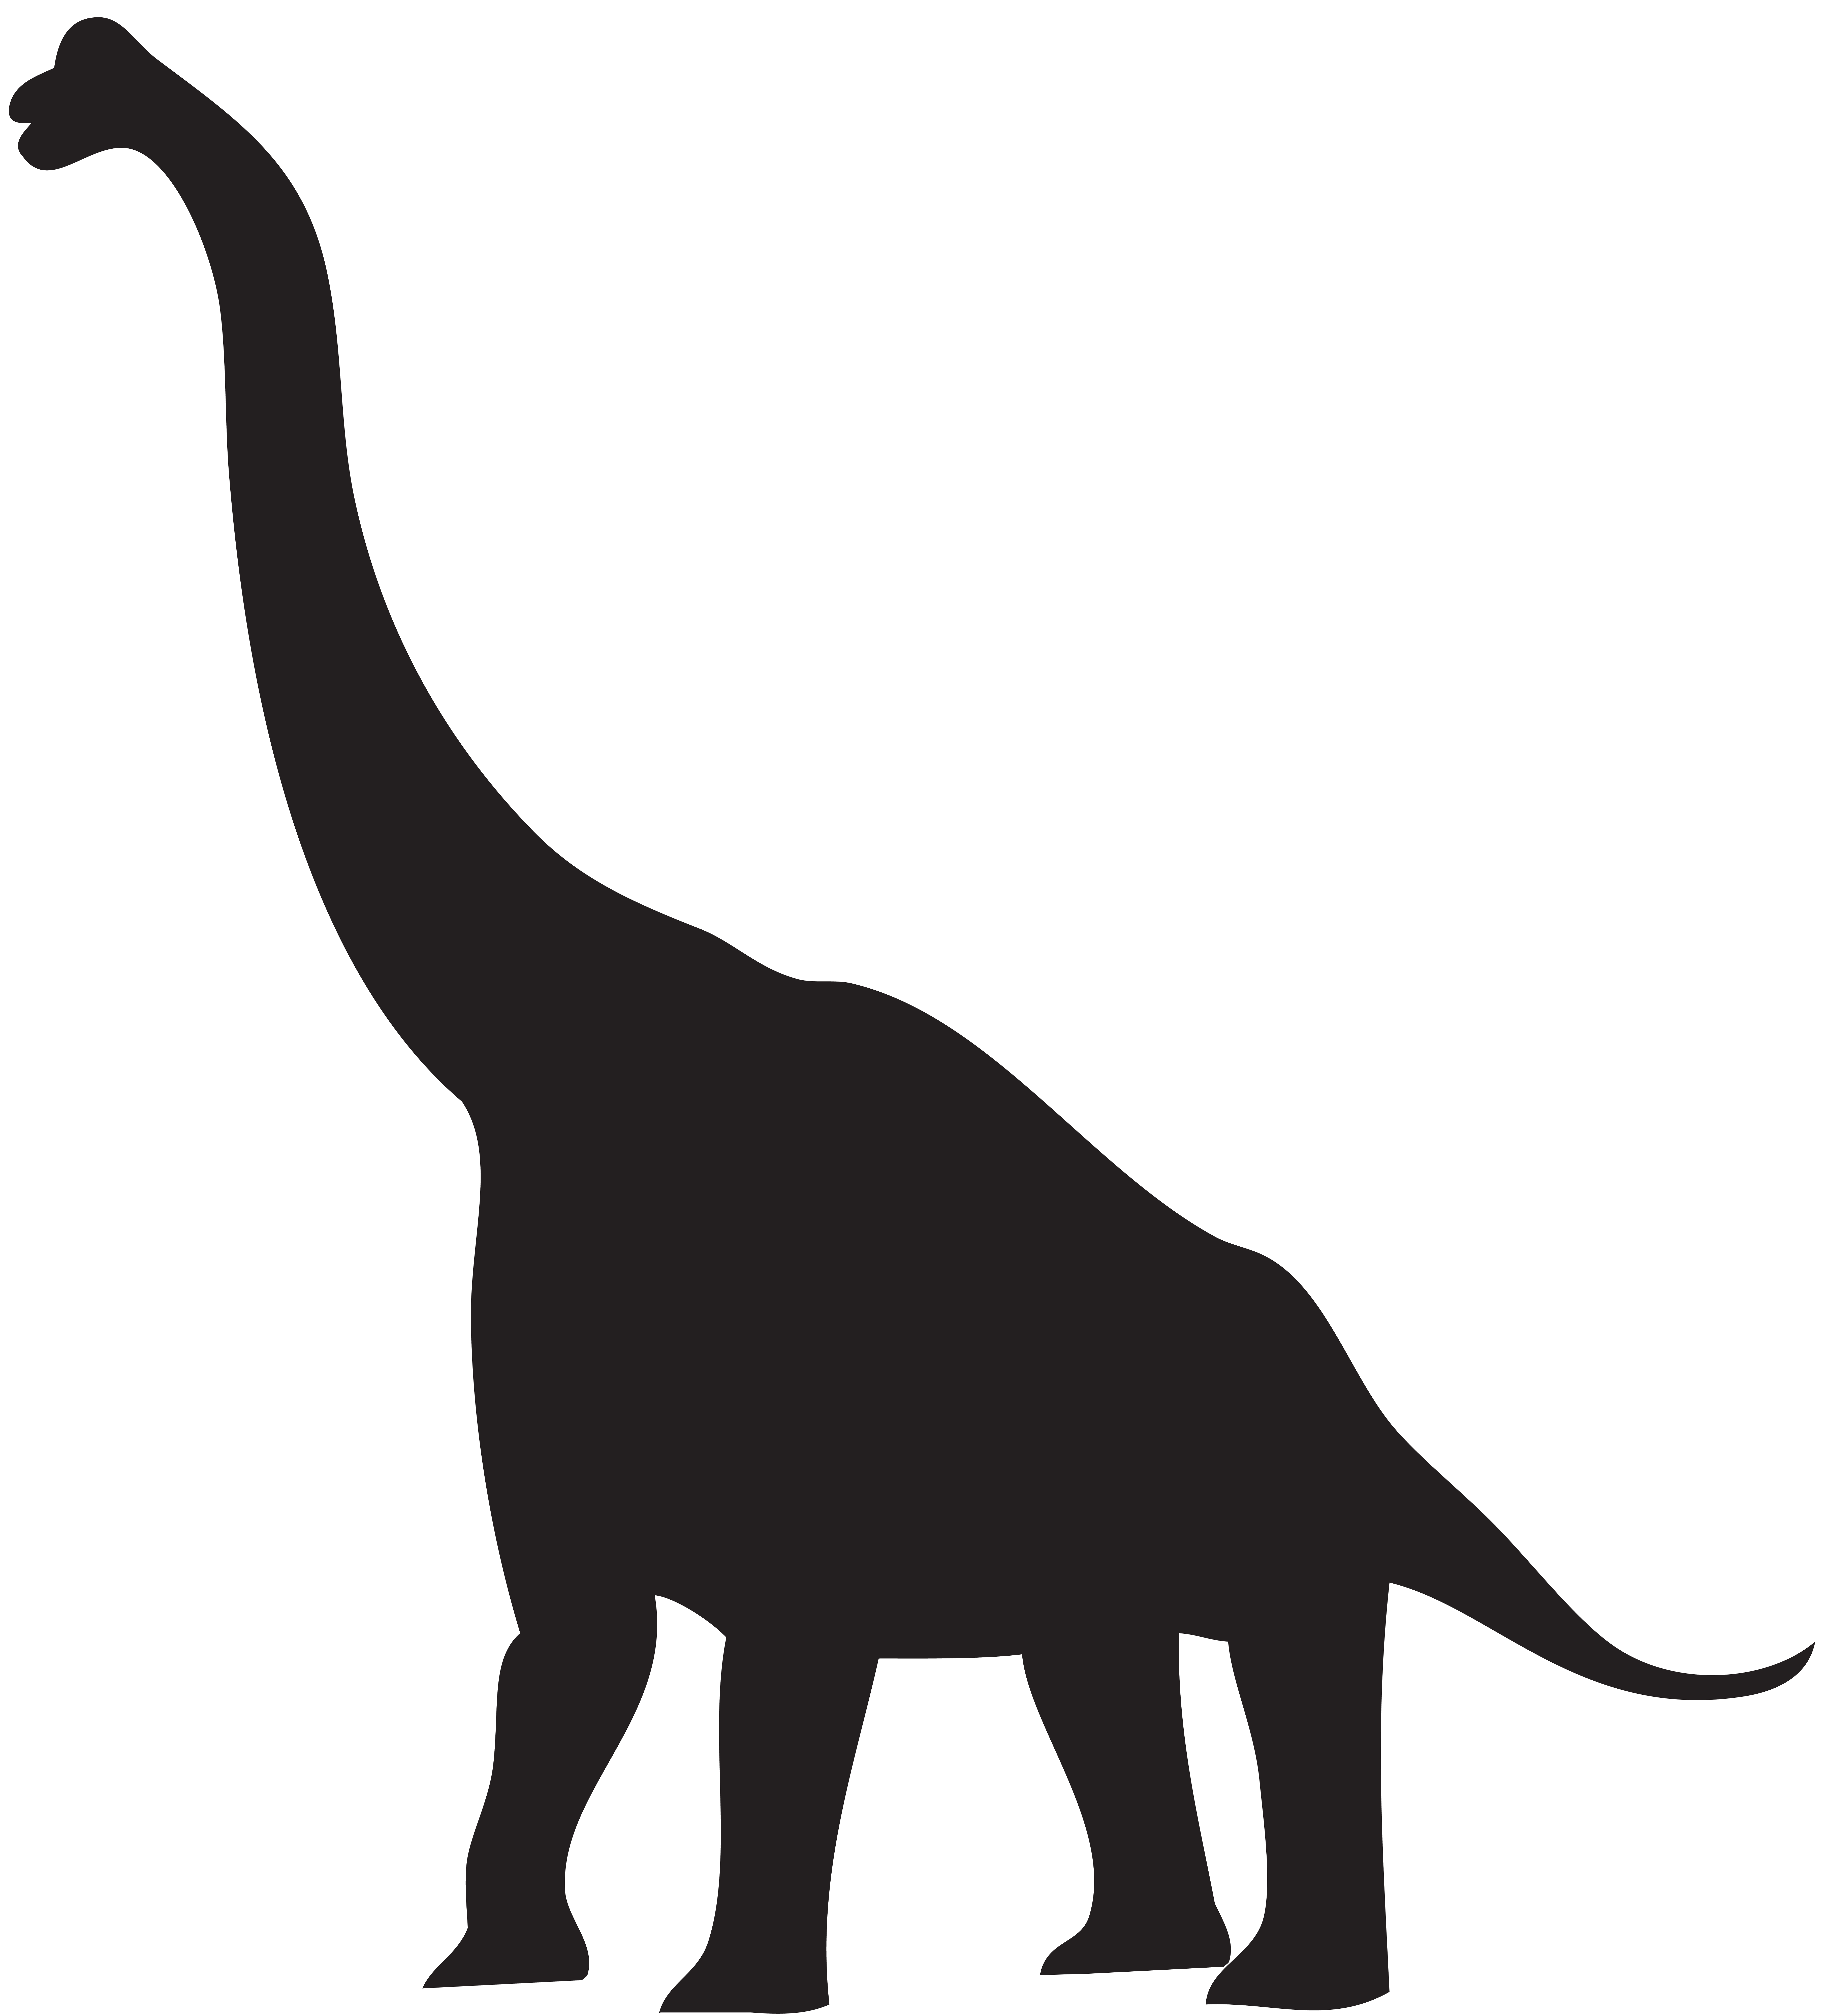 7238x8000 Dinosaur Silhouette Png Clip Art Imageu200b Gallery Yopriceville